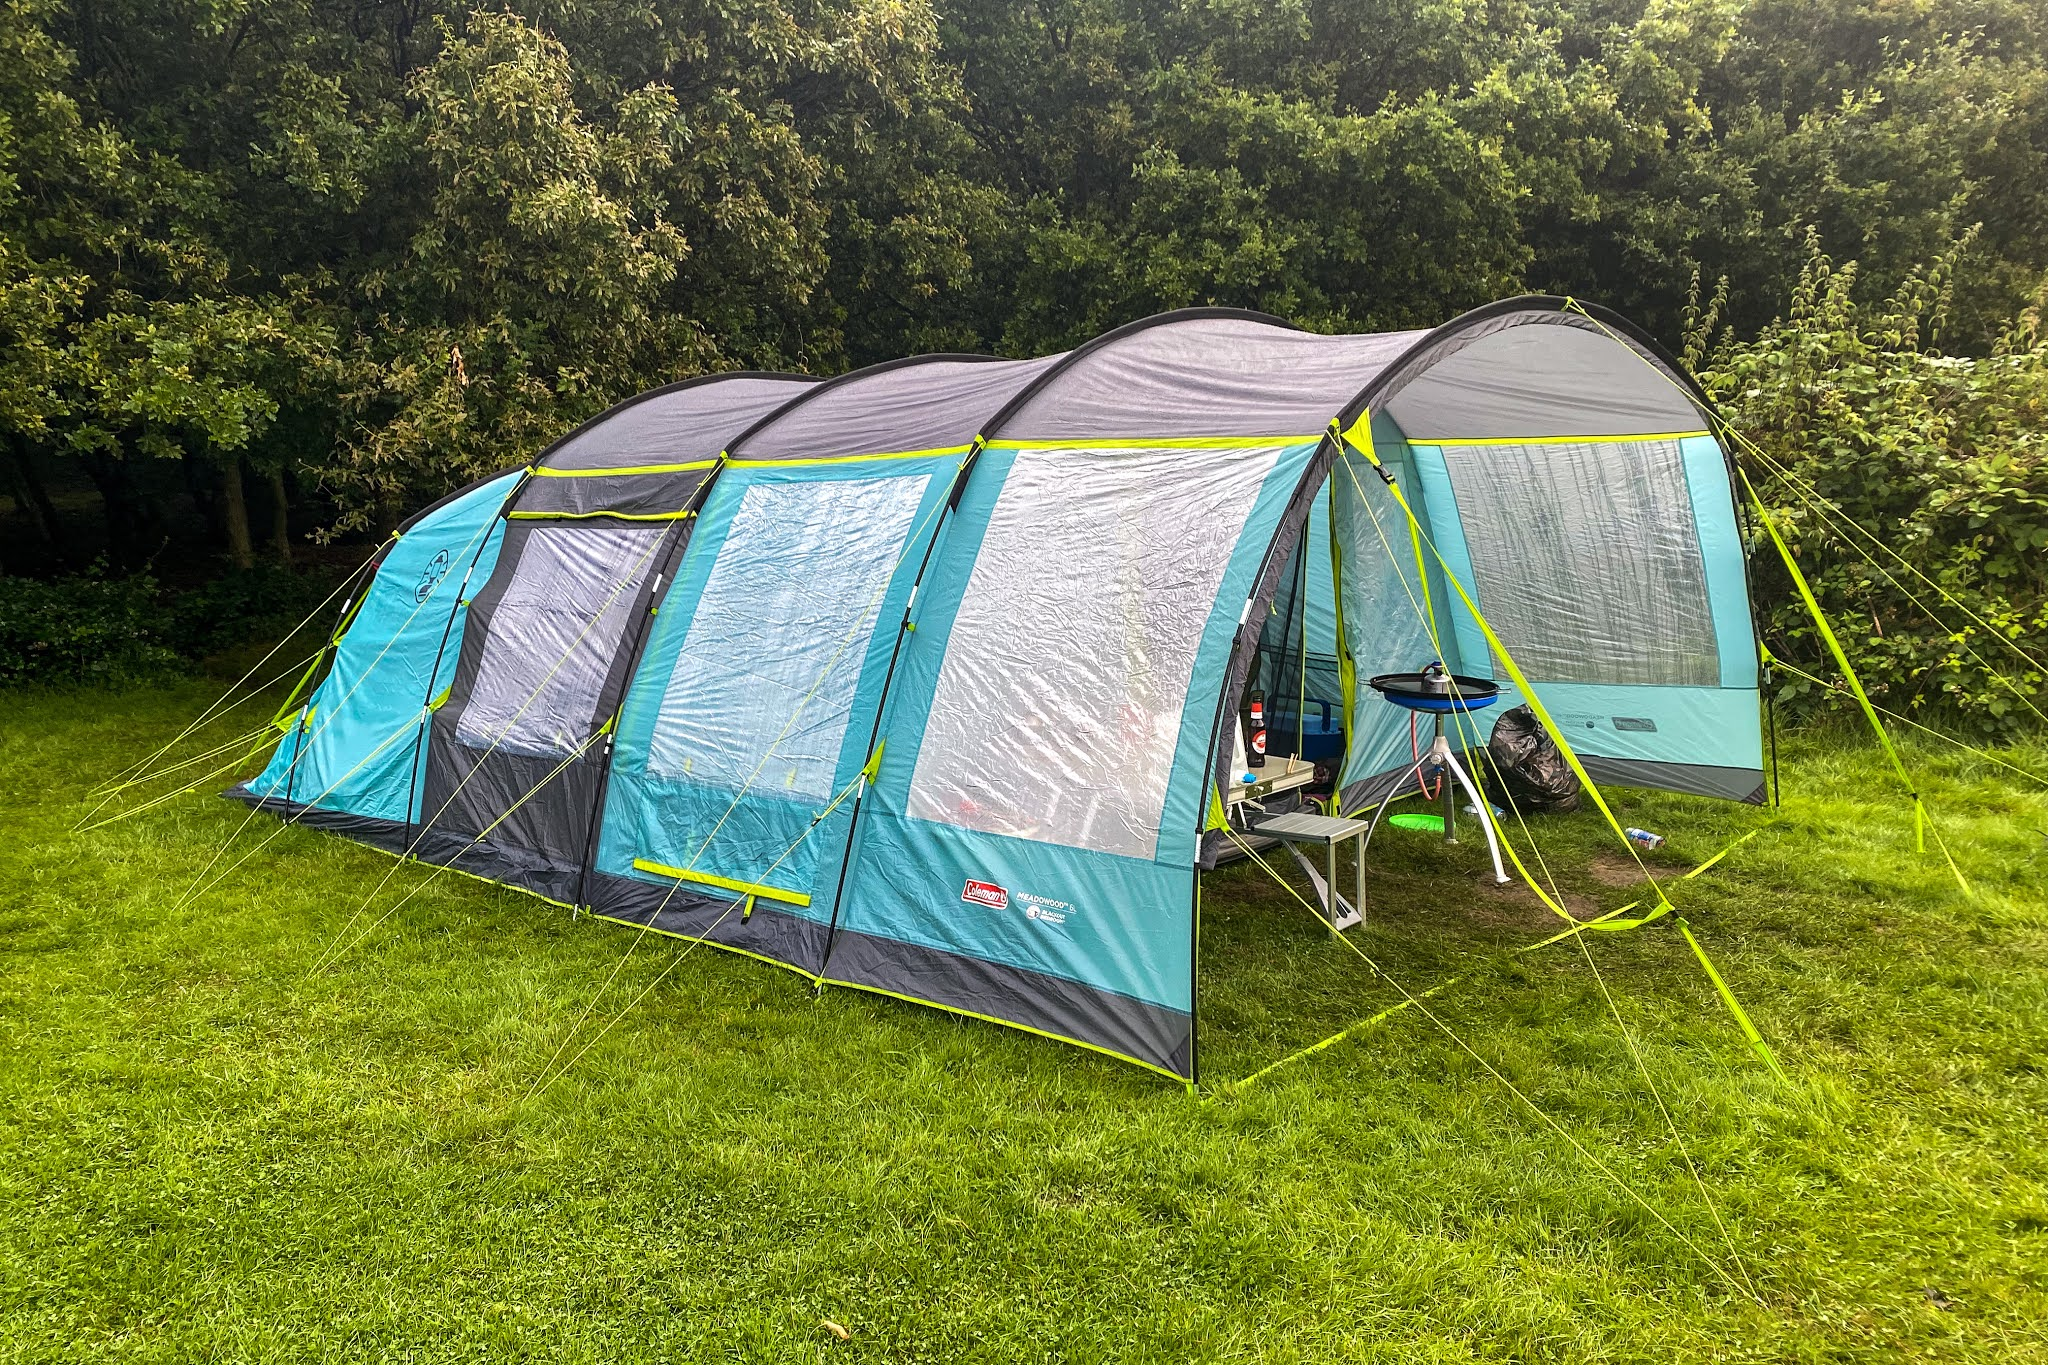 A side and front view of the coleman meadowood 6L tent